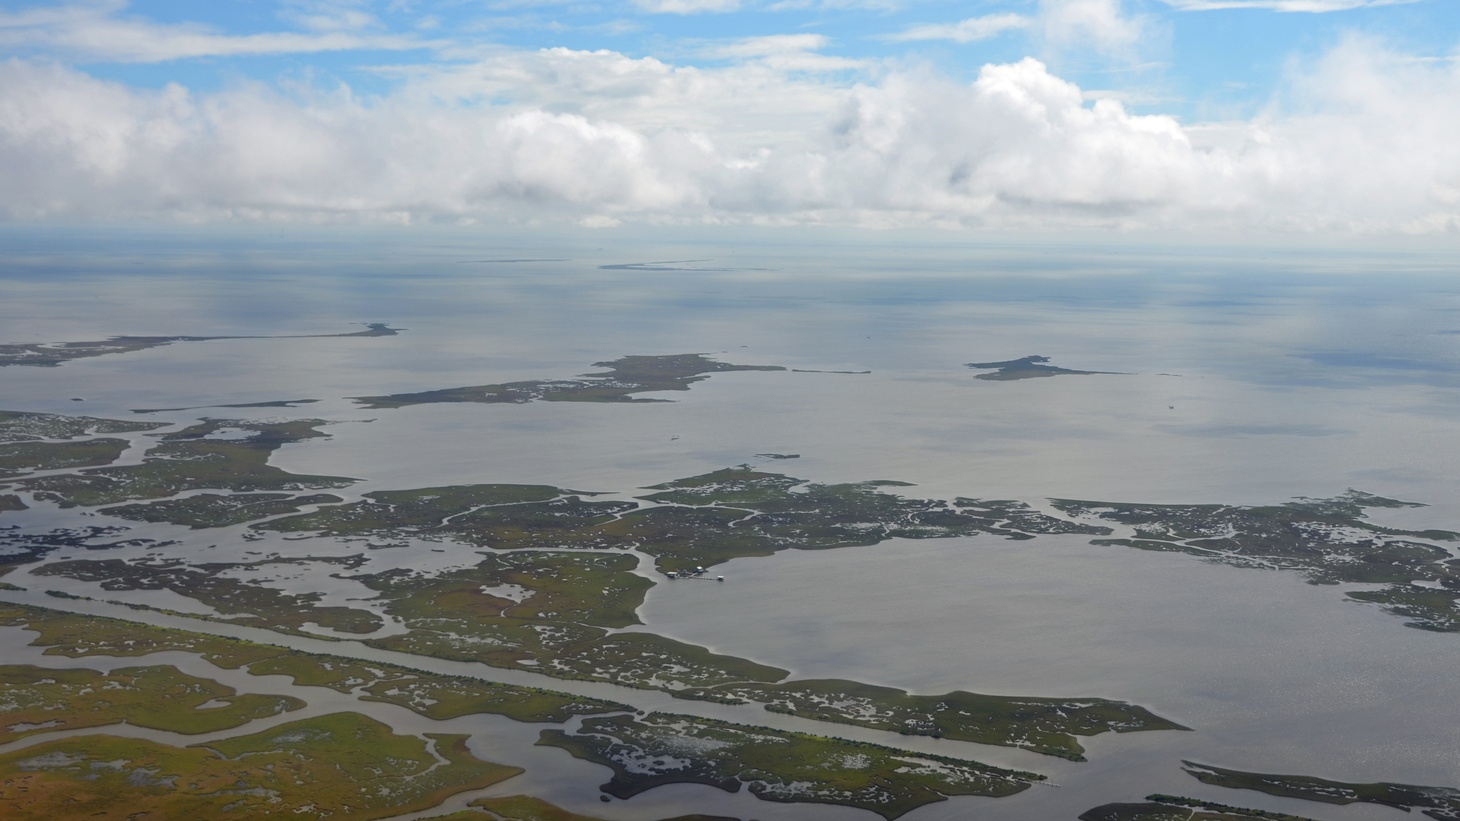 Louisiana is losing chunks of its coast at a remarkable rate. The erosion threatens to destroy most of the US offshore oil and gas production, much of its seafood industry and millions of homes. Should the fossil fuel industry foot the bill for restoring the coast? Or should taxpayers pony up the full amount?